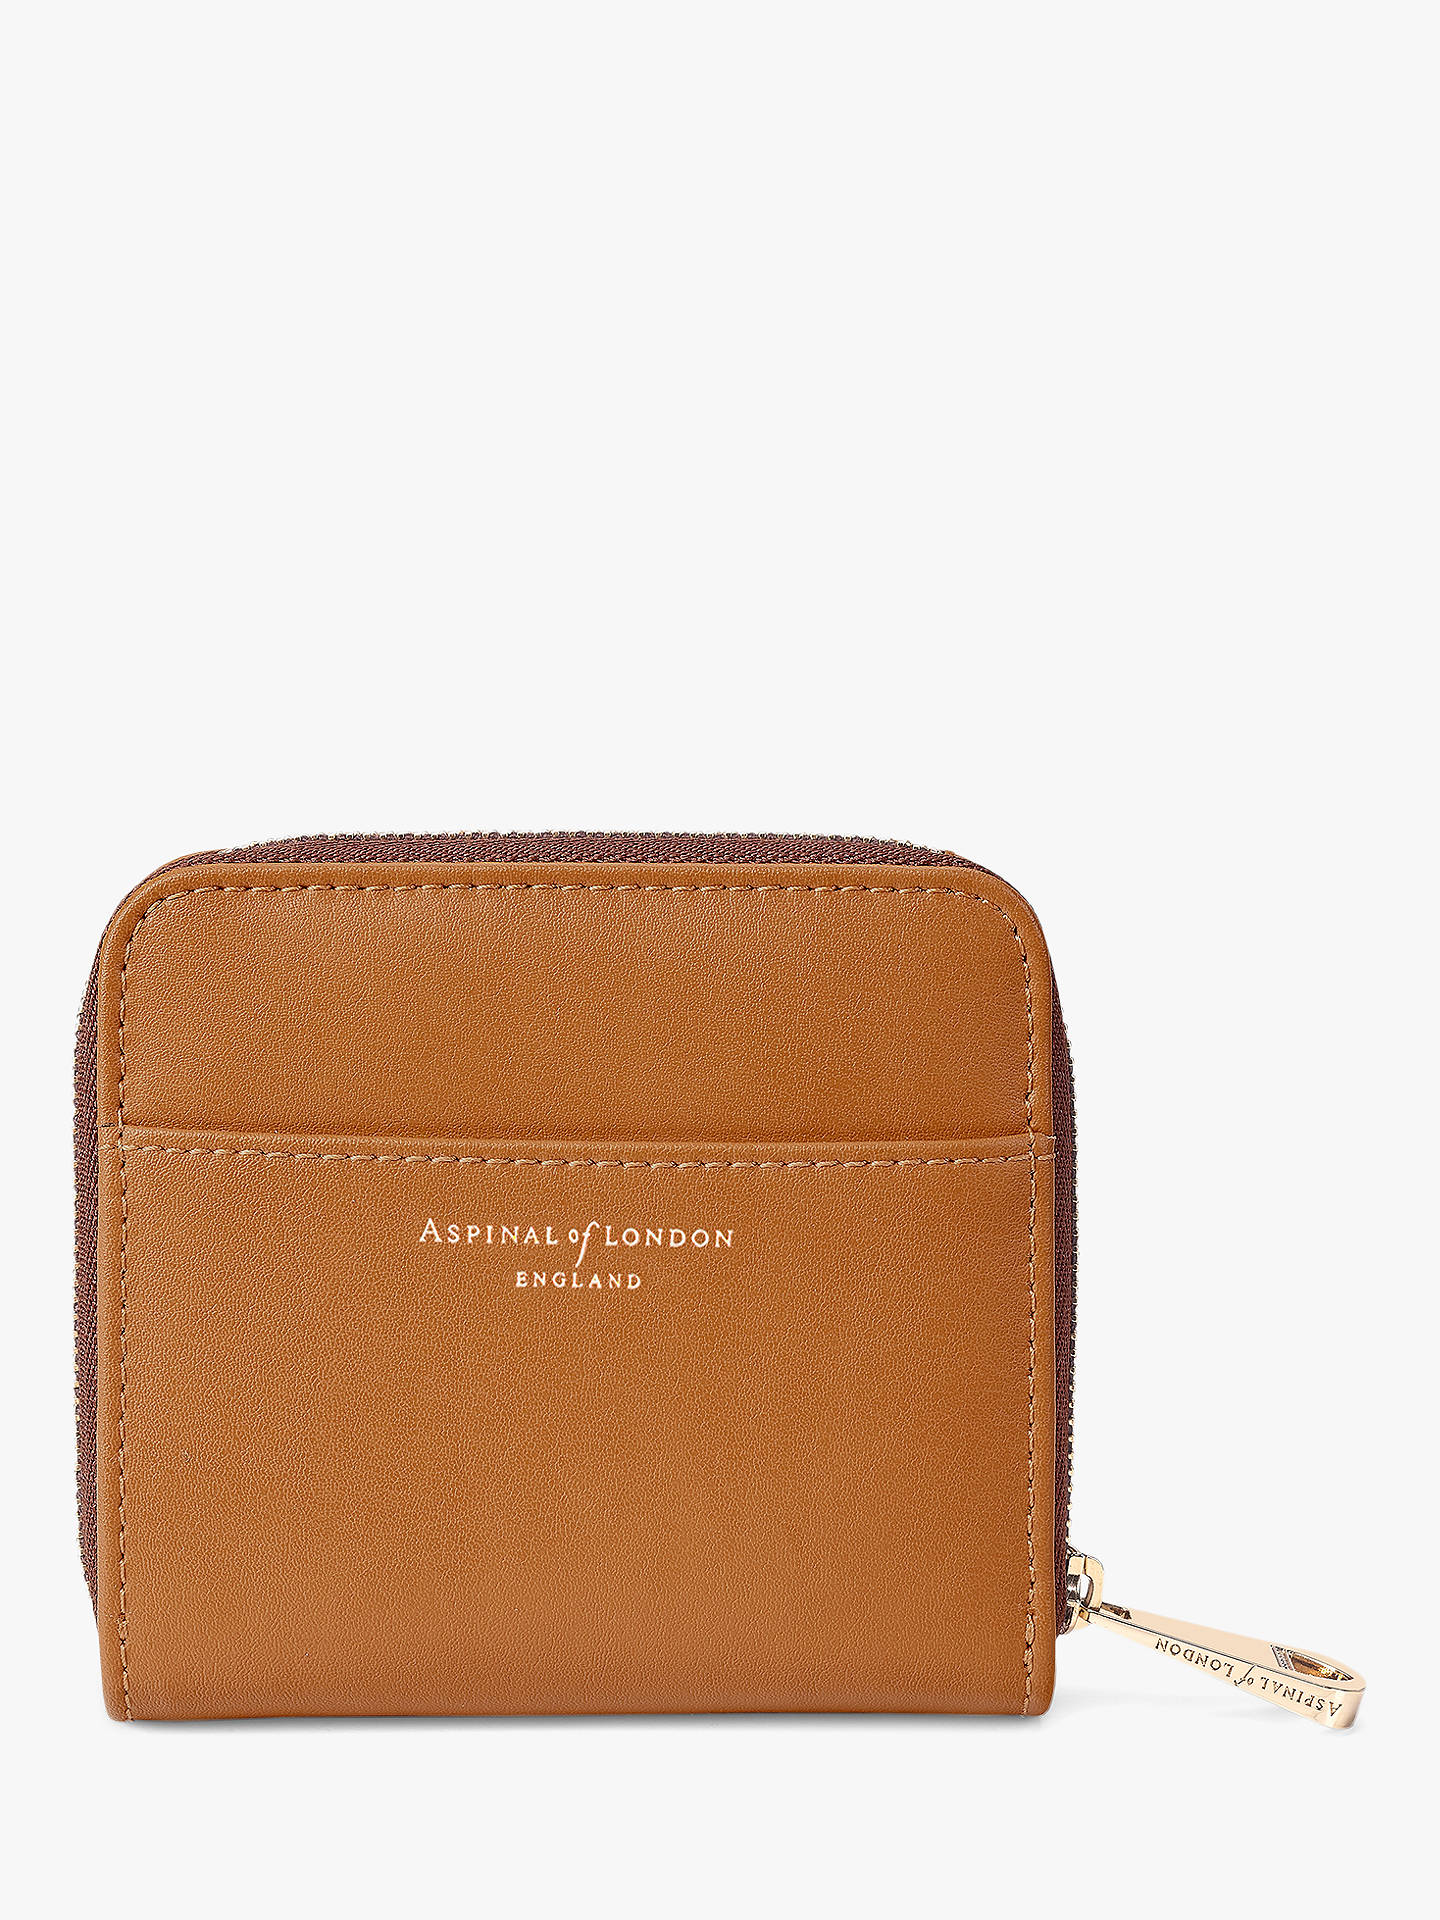 BuyAspinal of London Smooth Leather Continental Mini Purse, Tan Online at johnlewis.com